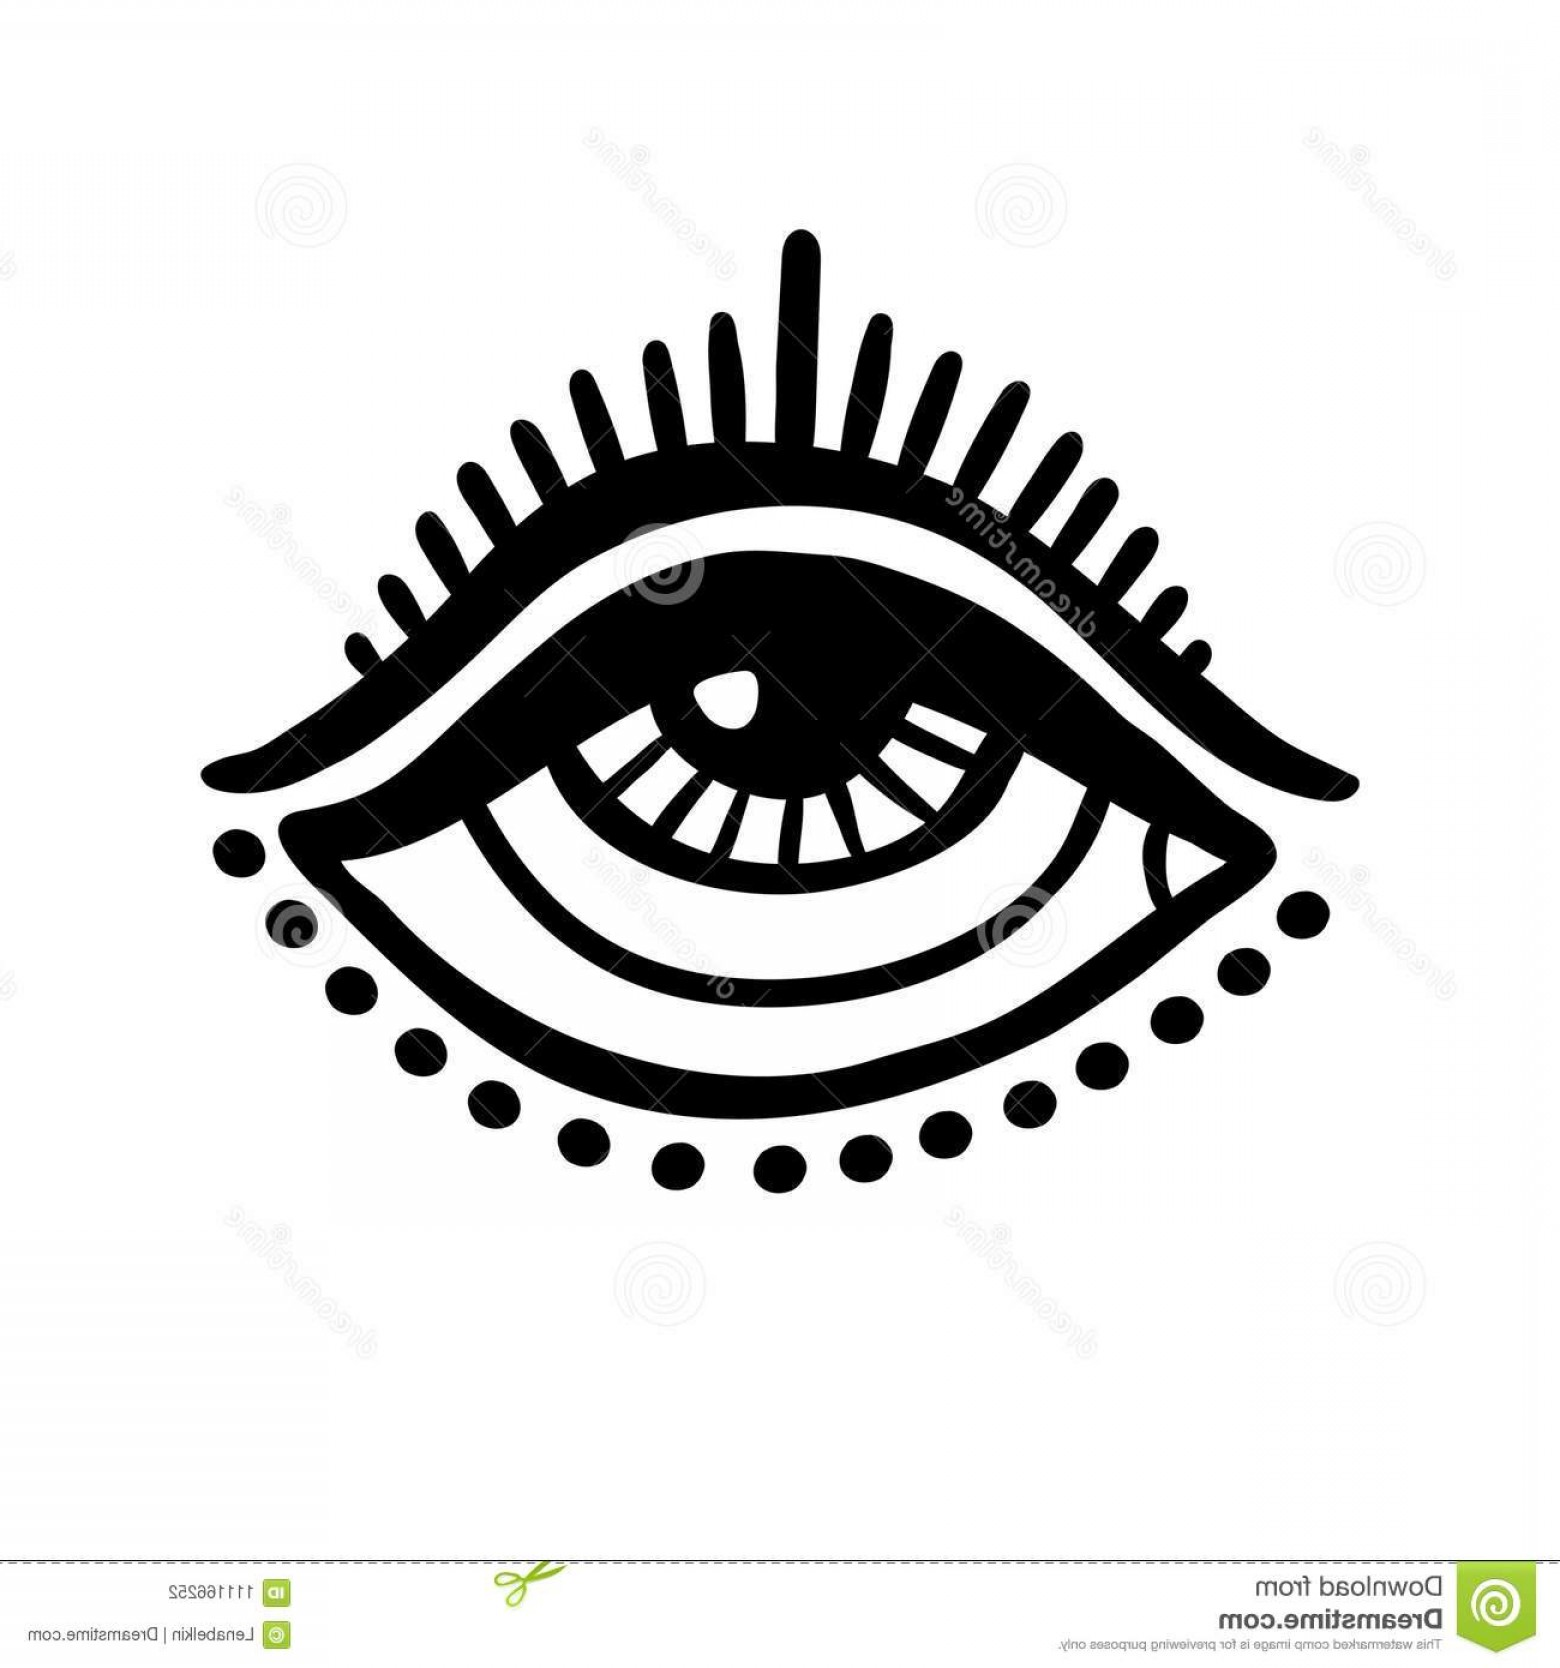 Eye Tatoo Vector: Third Eye Icon Hand Drawn Doodle Style Tattoo Design Element Vector Illustration Image